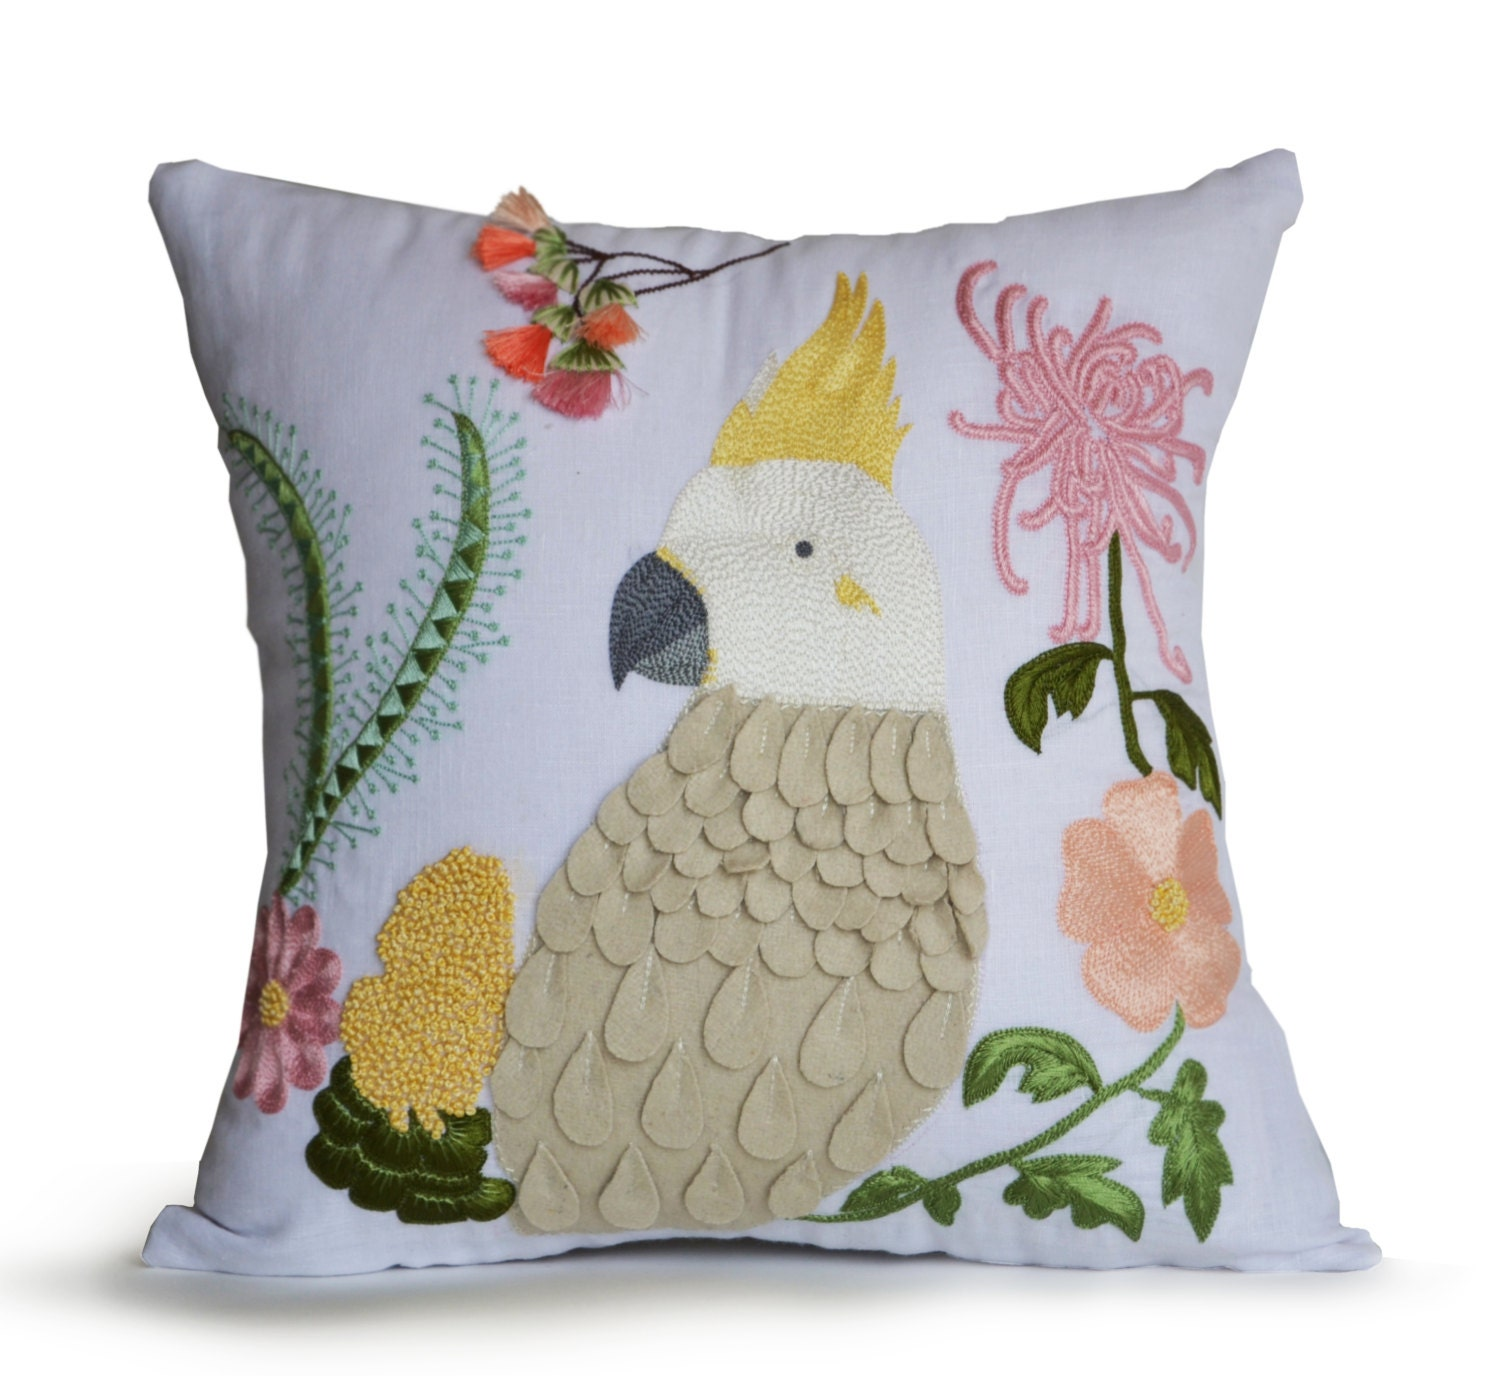 Throw Pillows With Birds : Throw Pillow Cover Decorative Pillow Bird Pillows Pink